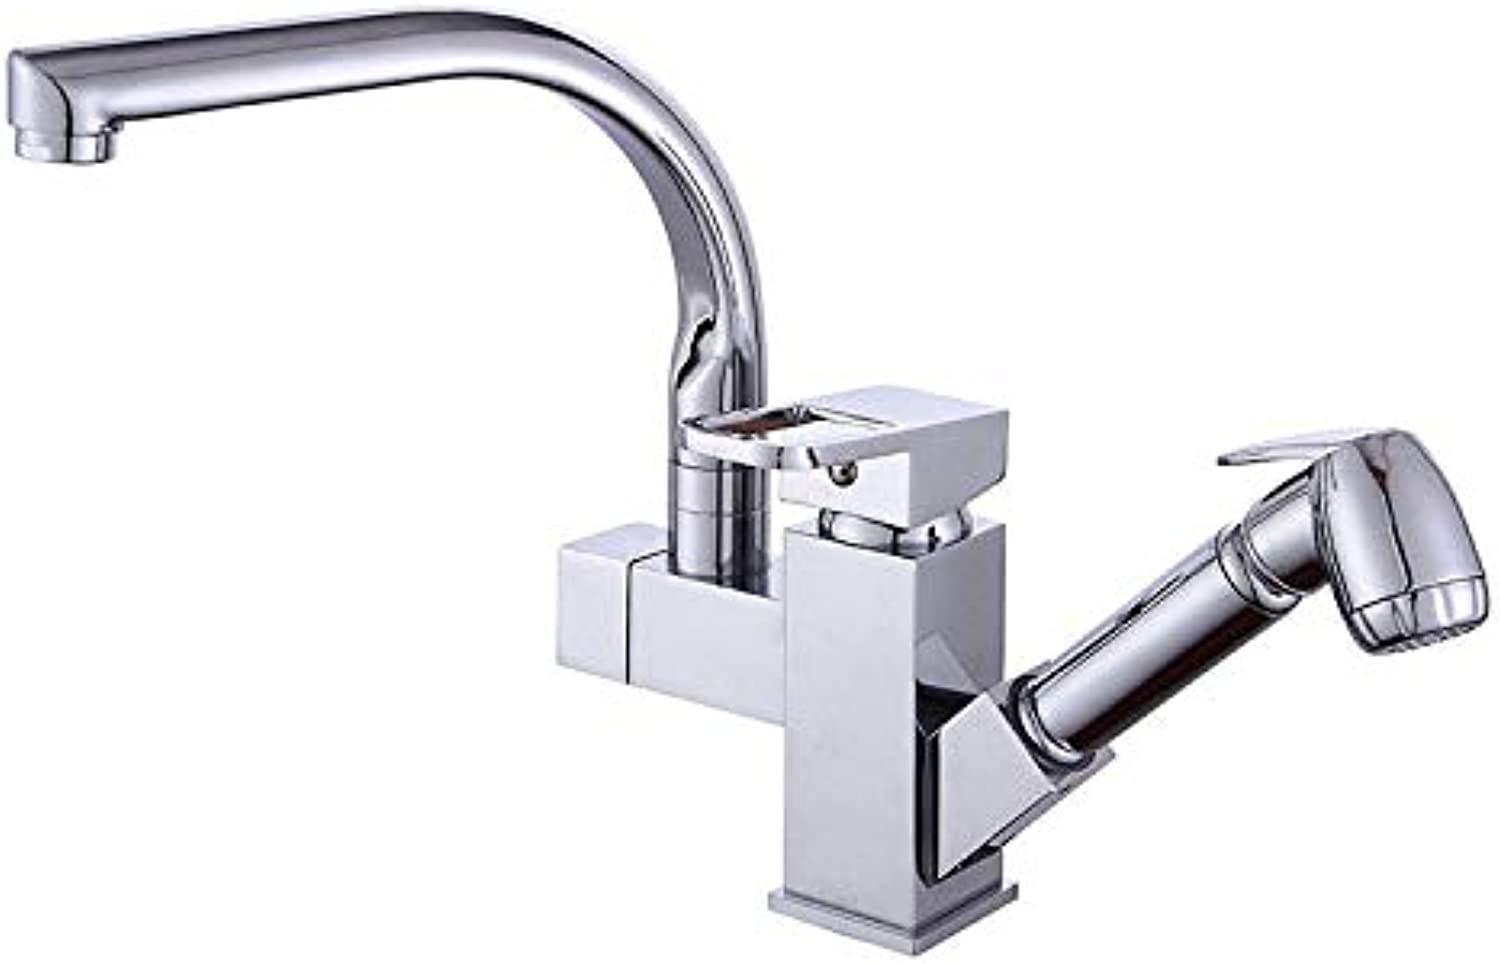 Kitchen Tap, Kitchen Sink Pull Out Mixer Taps, Swivel Spout Bathroom Basin Faucet Two water modes